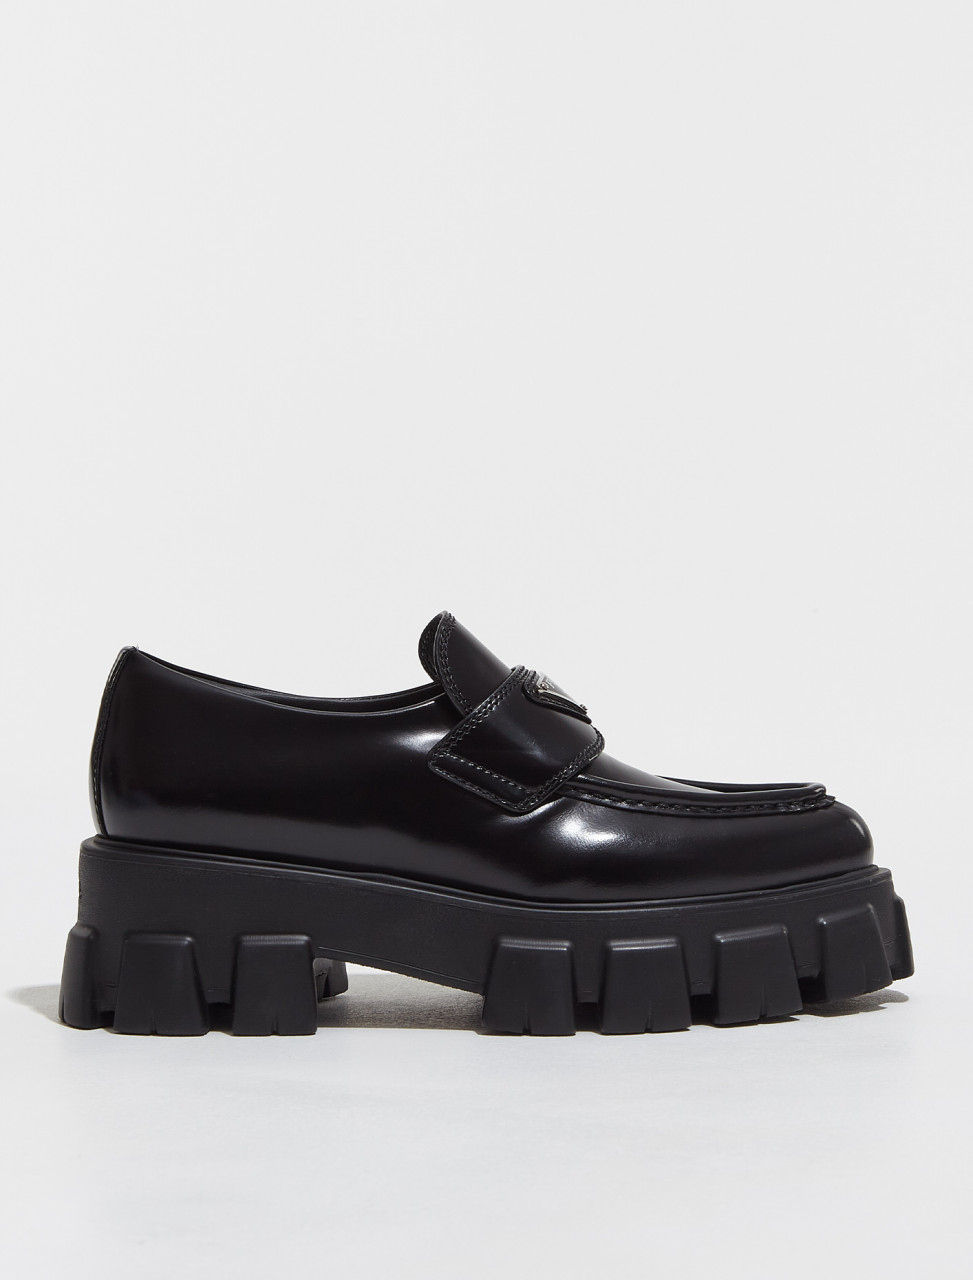 1D663M_055_F0002 PRADA MONOLITH BRUSHED LEATHER POINTED LOAFERS IN BLACK